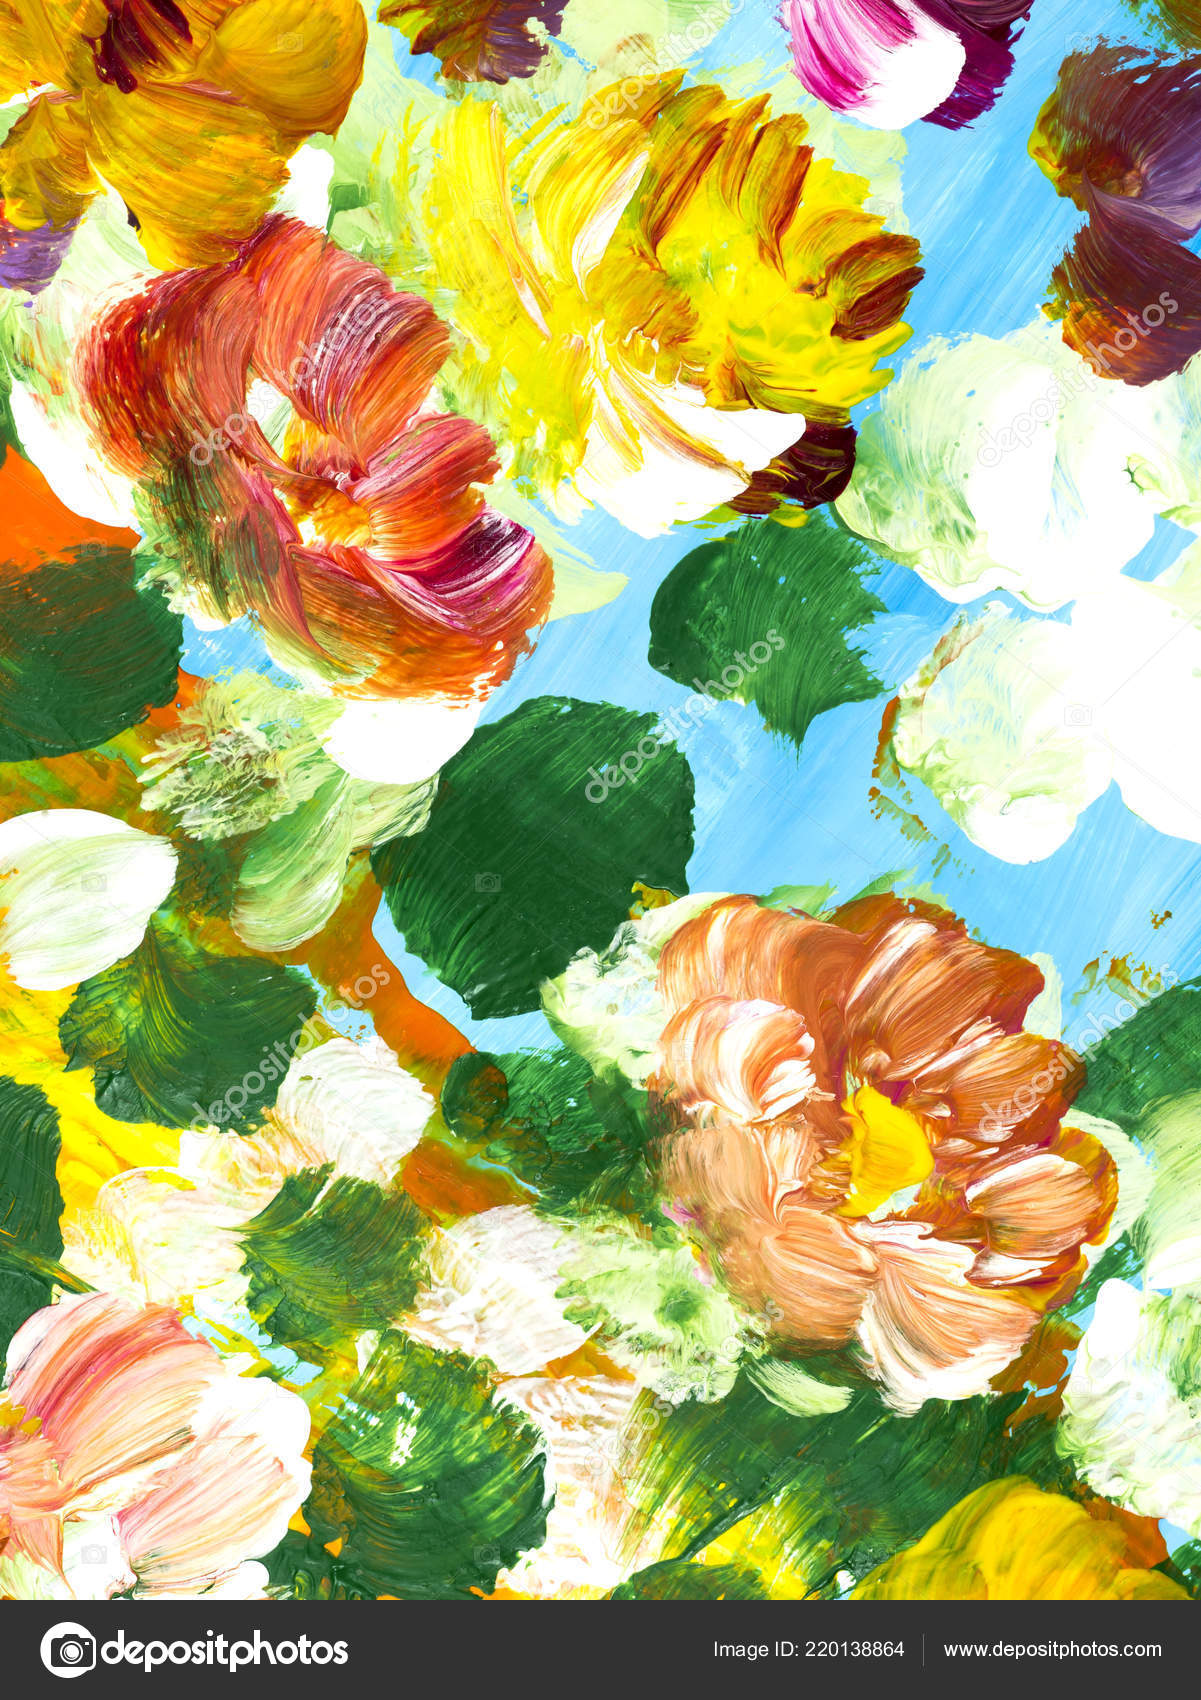 Flower Hand Painting Abstract Colorful Flowers Hand Painted